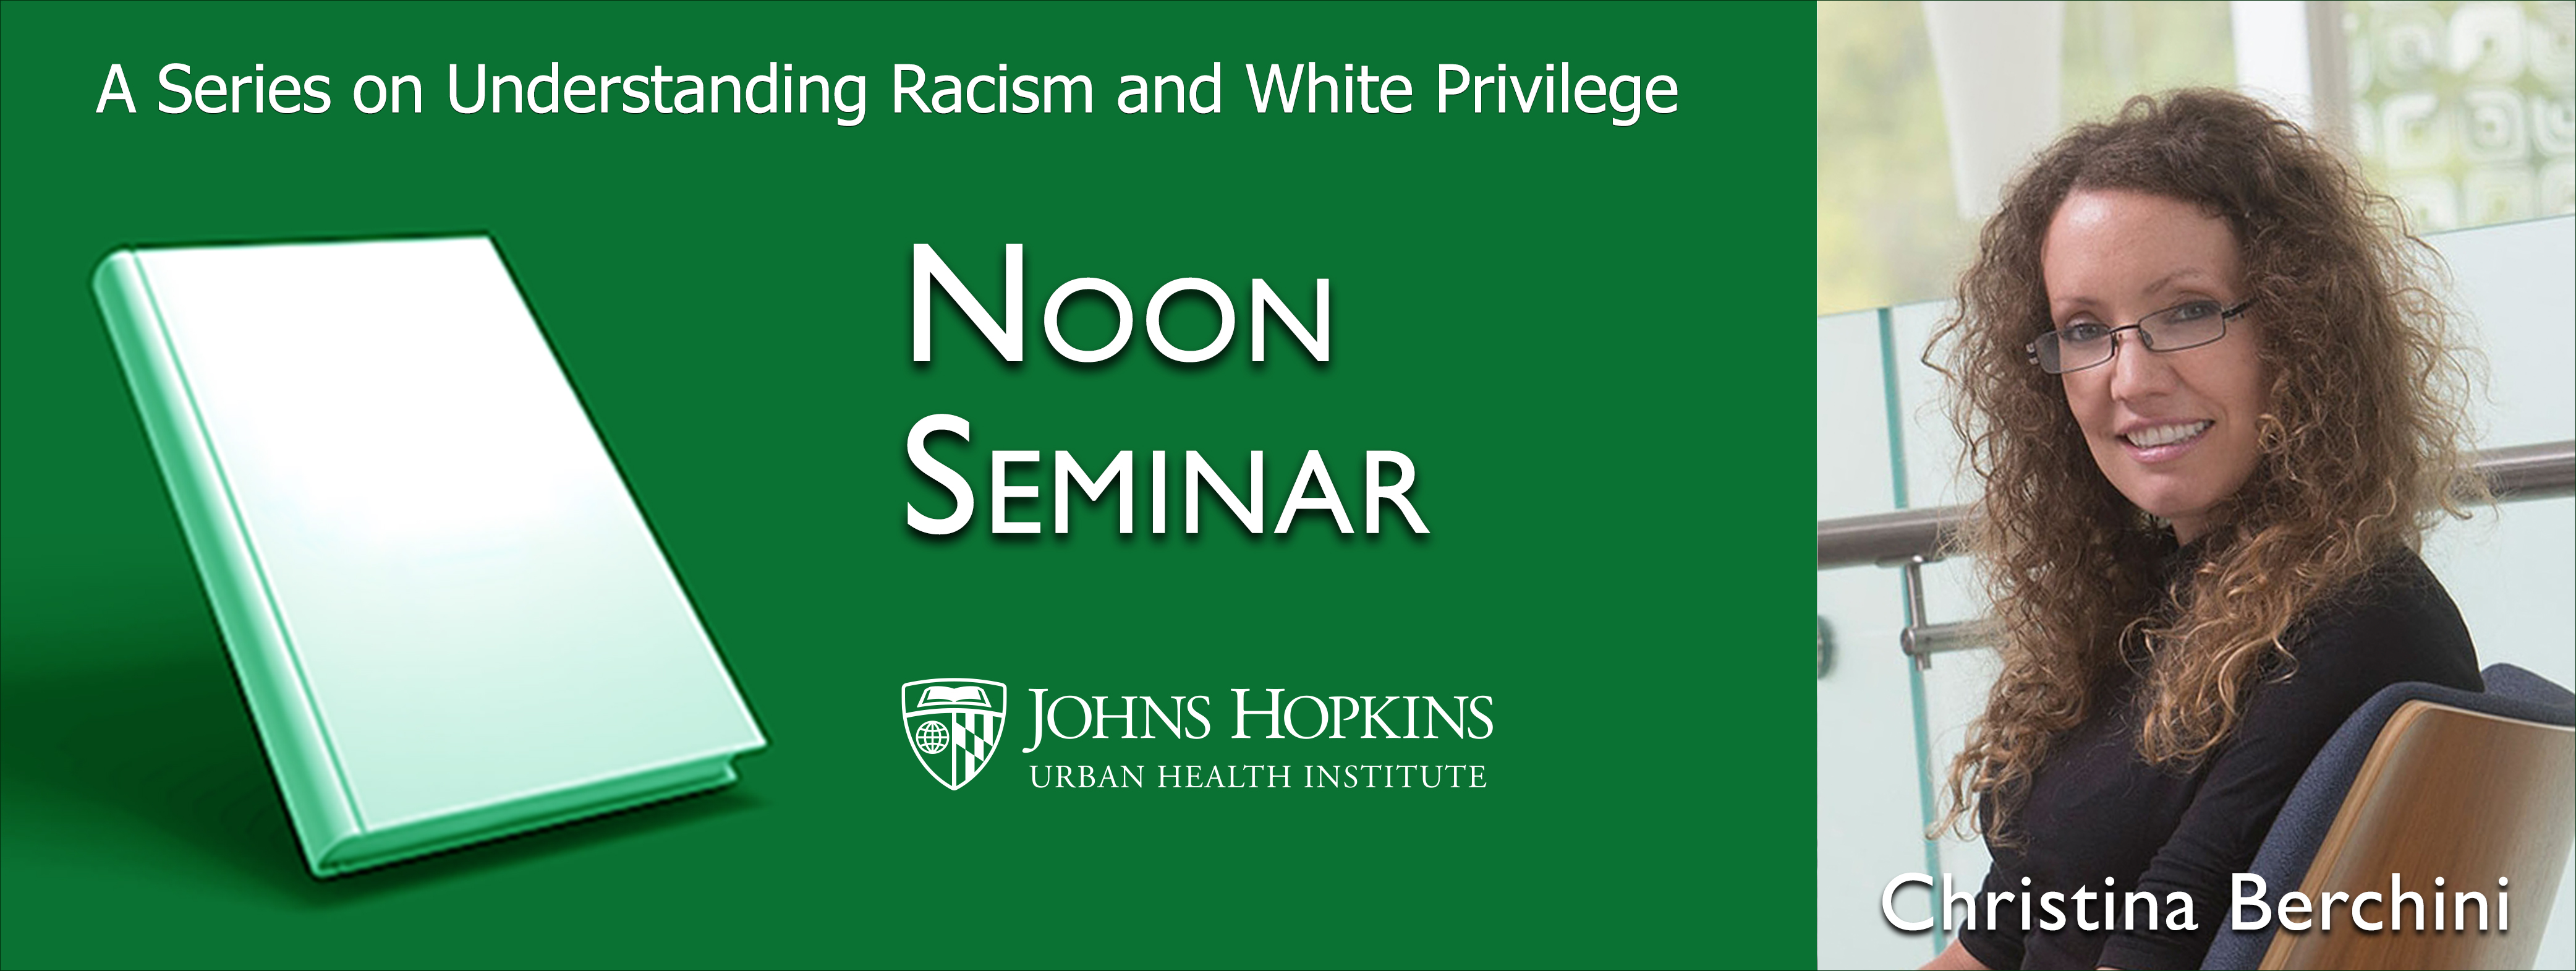 Noon Seminar with Christina Berchini